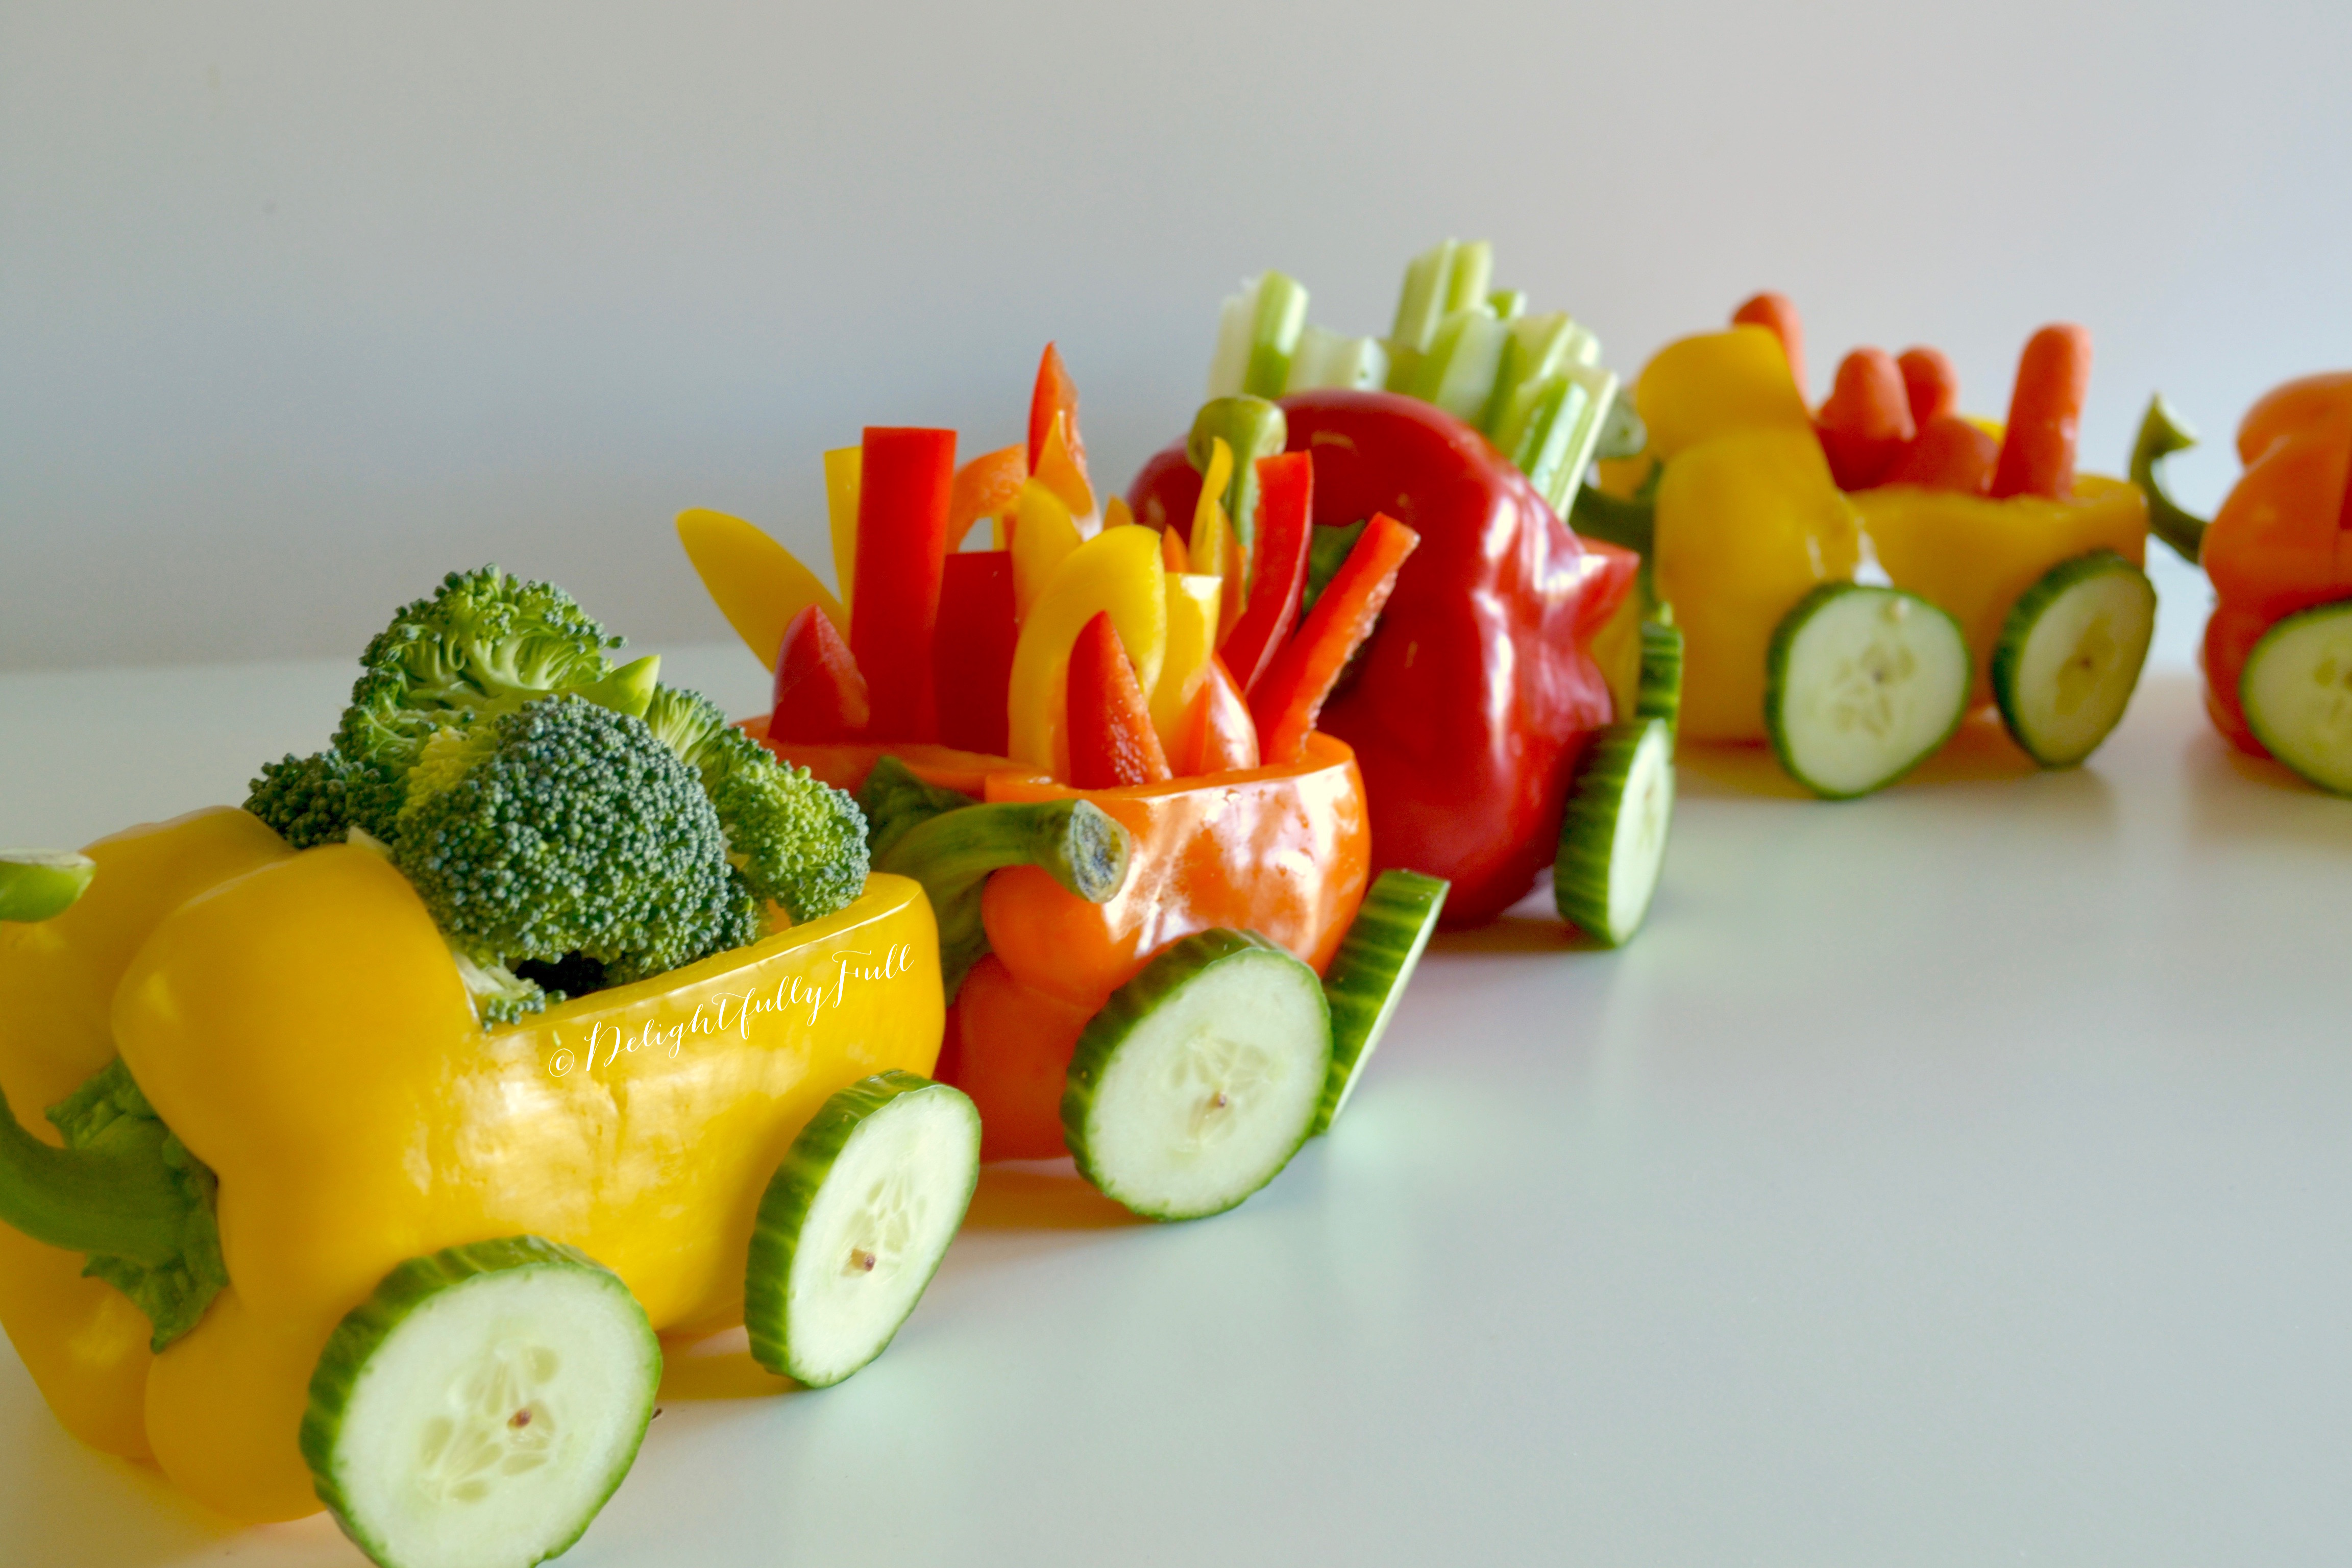 Exceptional Veggie Tray(n)